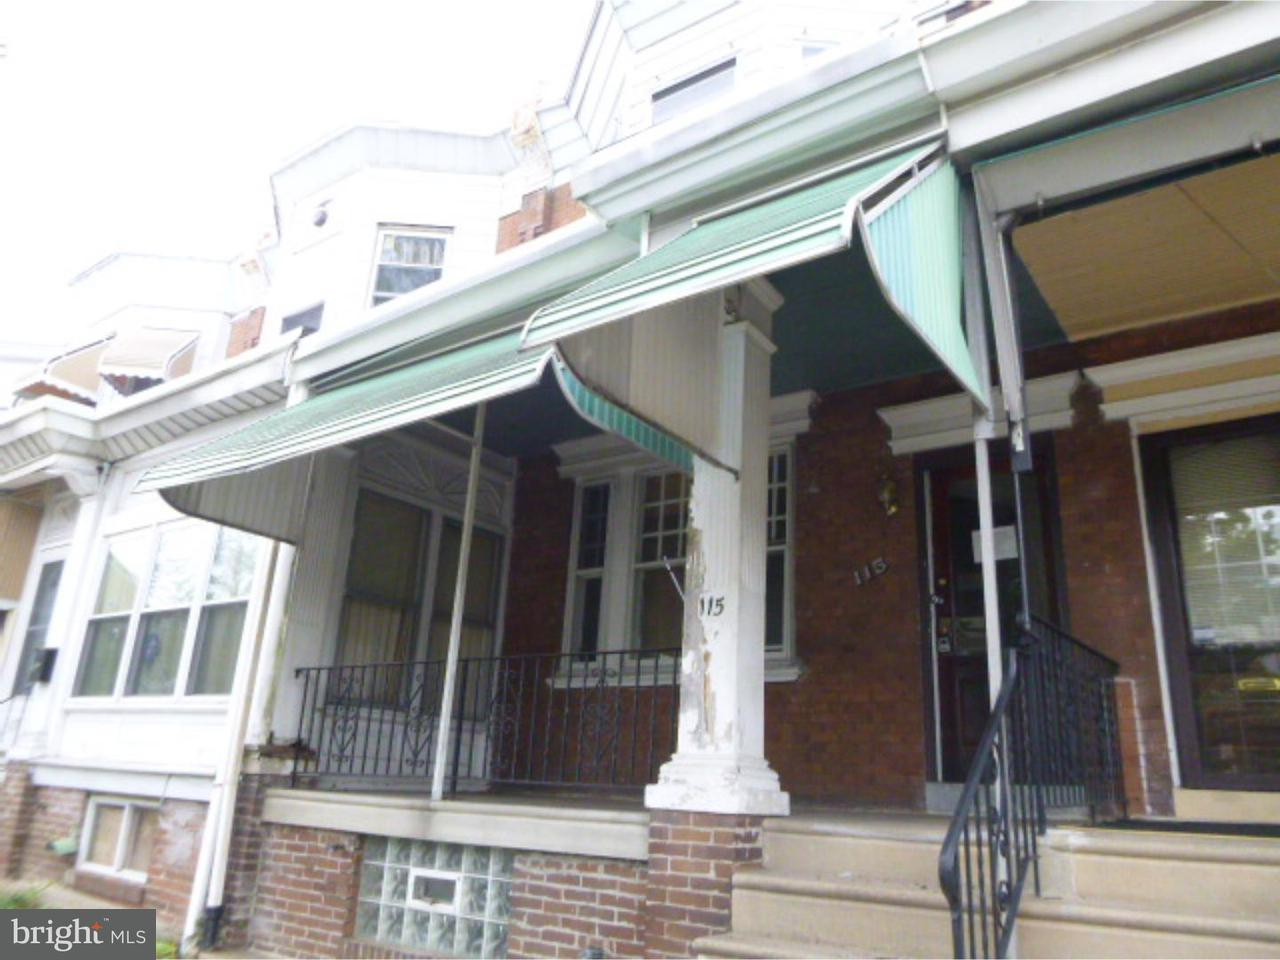 115 N 55TH Philadelphia, PA 19139